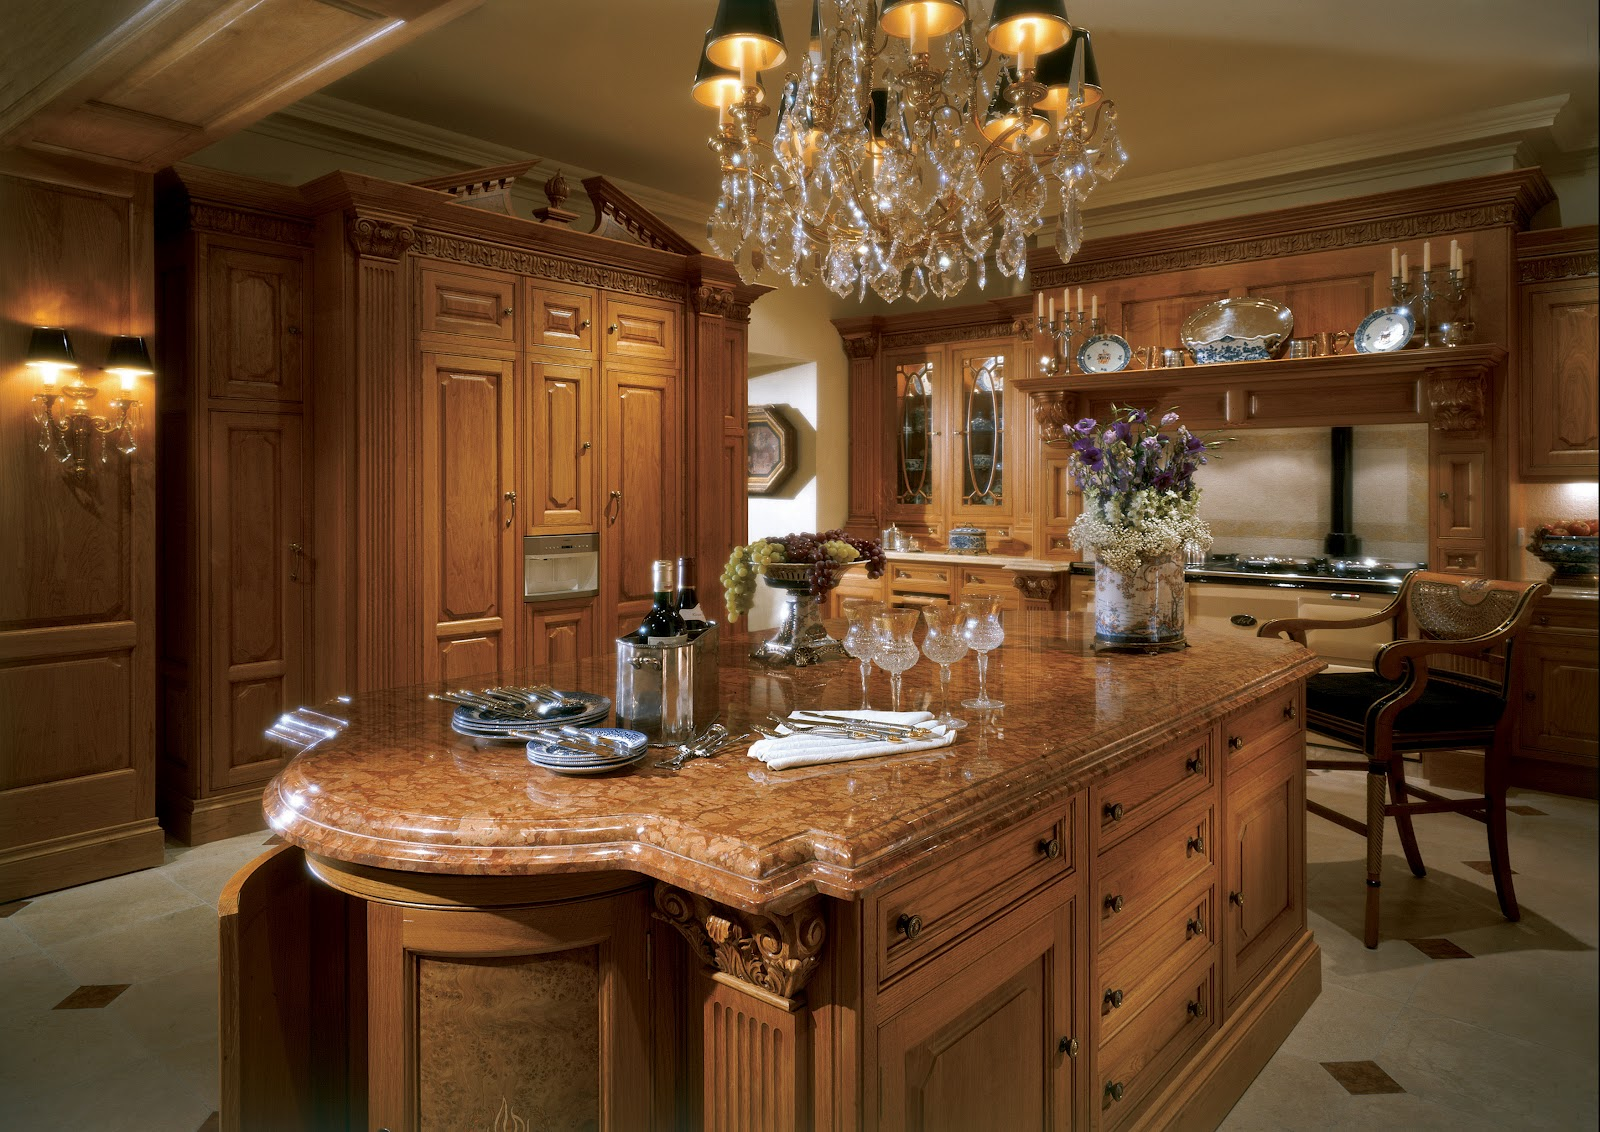 Kitchen Designers Nottingham. Regency Honey Oak kitchen with a Victorian Belgravia Mantle  TRADITION INTERIORS OF NOTTINGHAM Clive Christian Luxury Kitchen